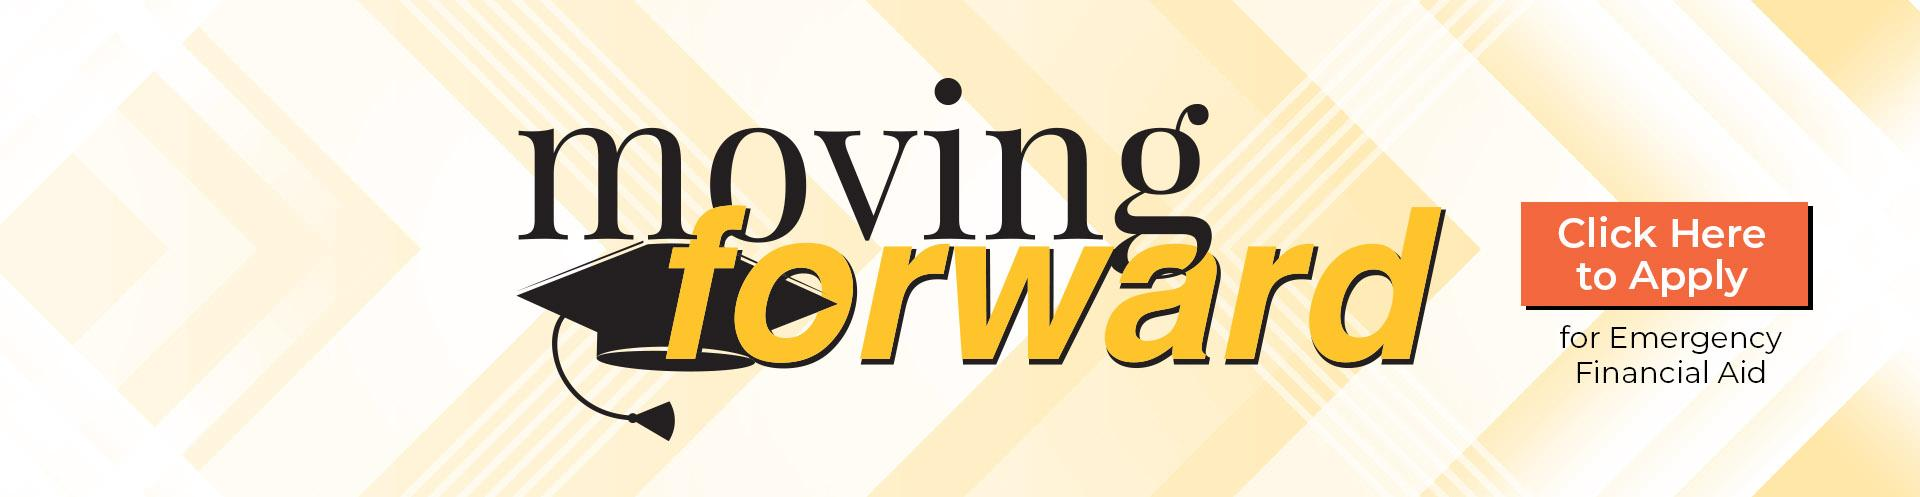 Moving Forward: Click to to apply for emergency financial aid